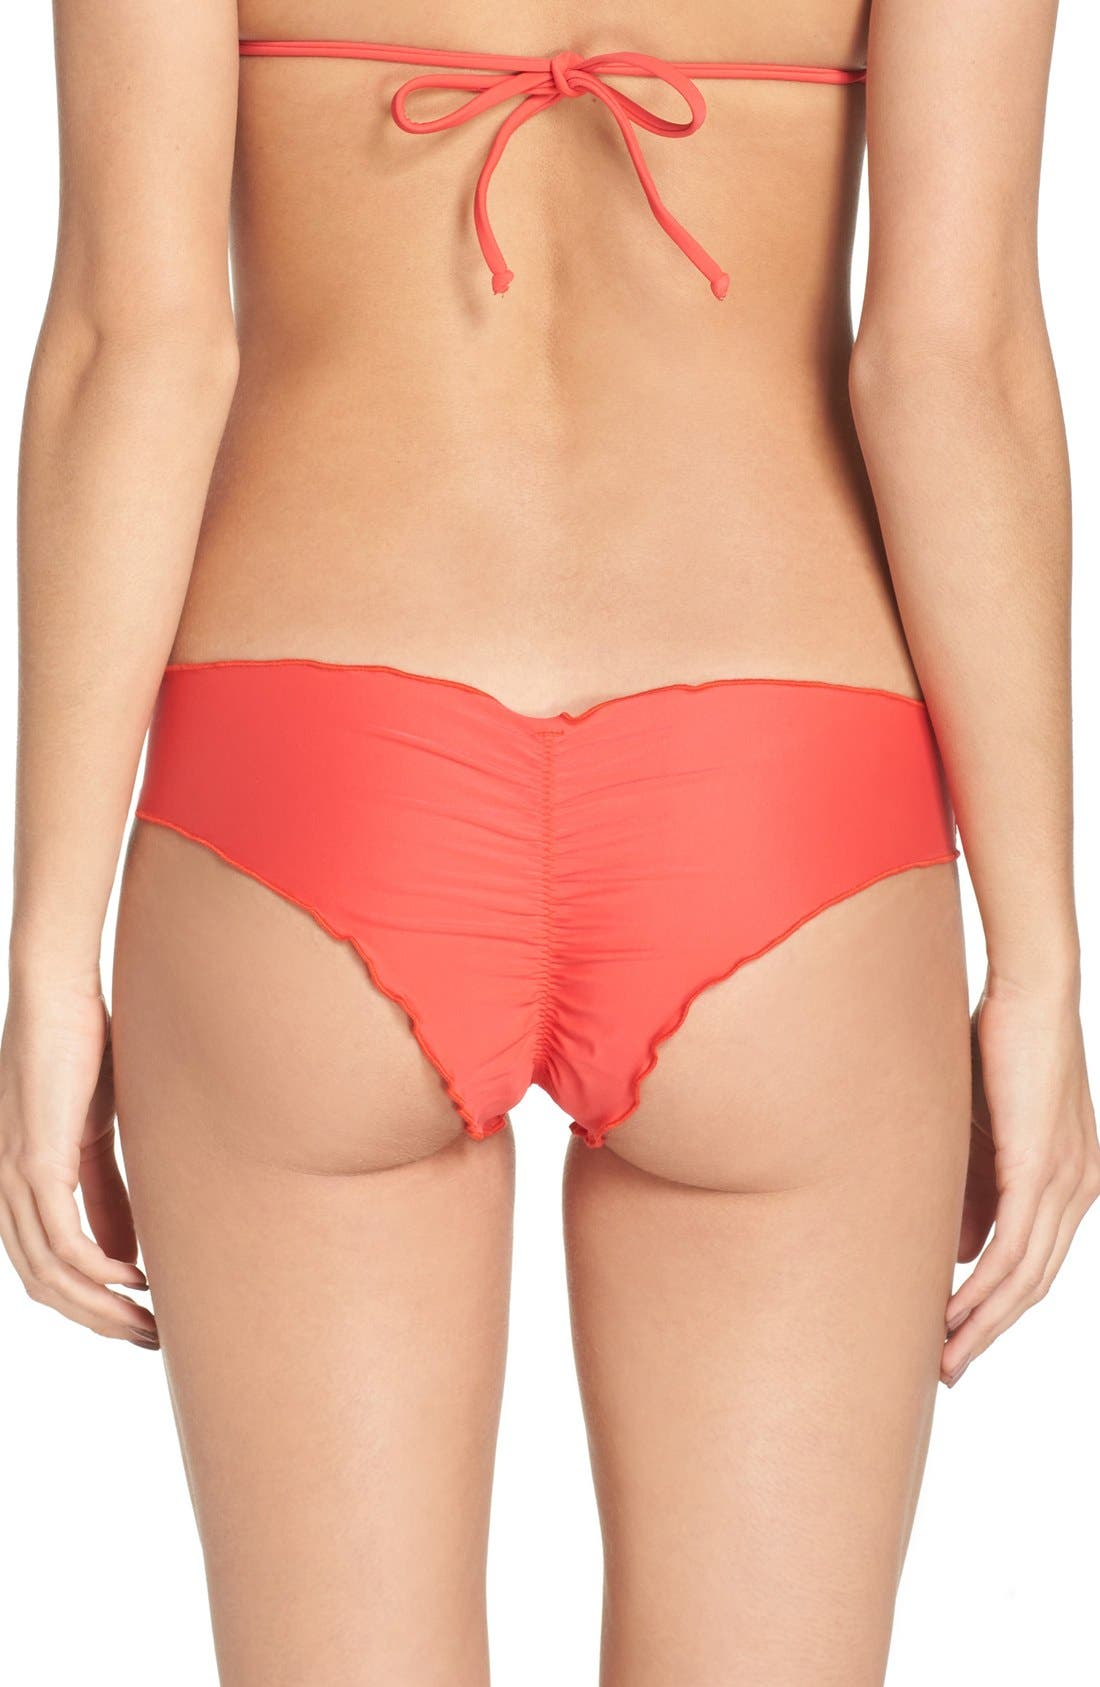 Alternate Image 1 Selected - Luli Fama 'Wavy' Brazilian Bikini Bottoms